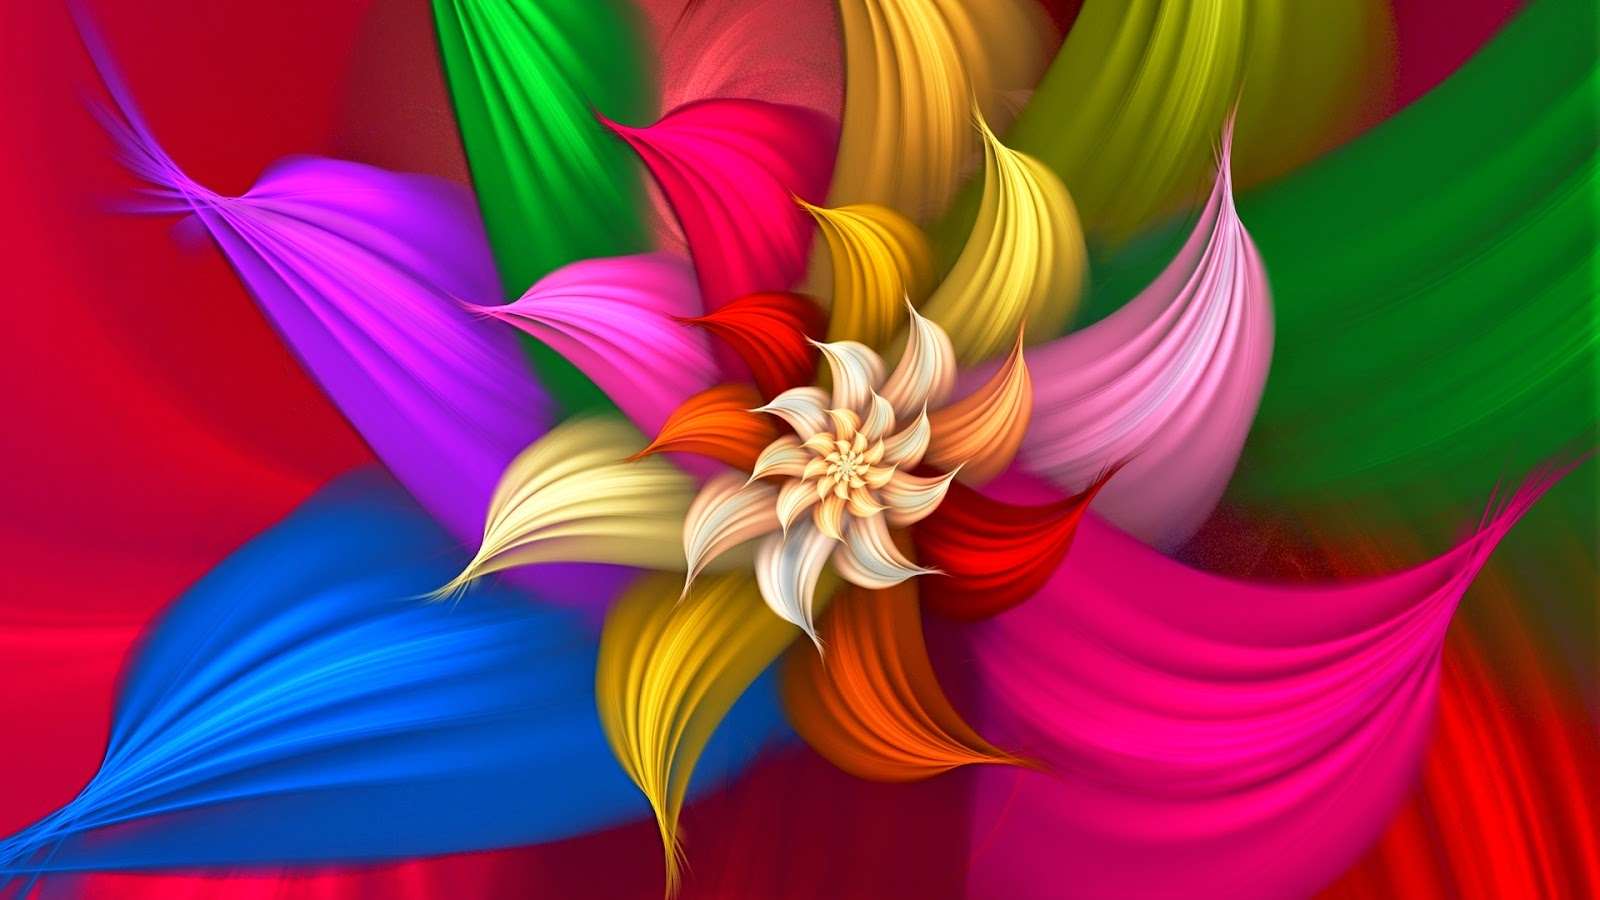 Abstract Design Flower Wallpaper: HD Wallpapers: Abstract Wallpapers